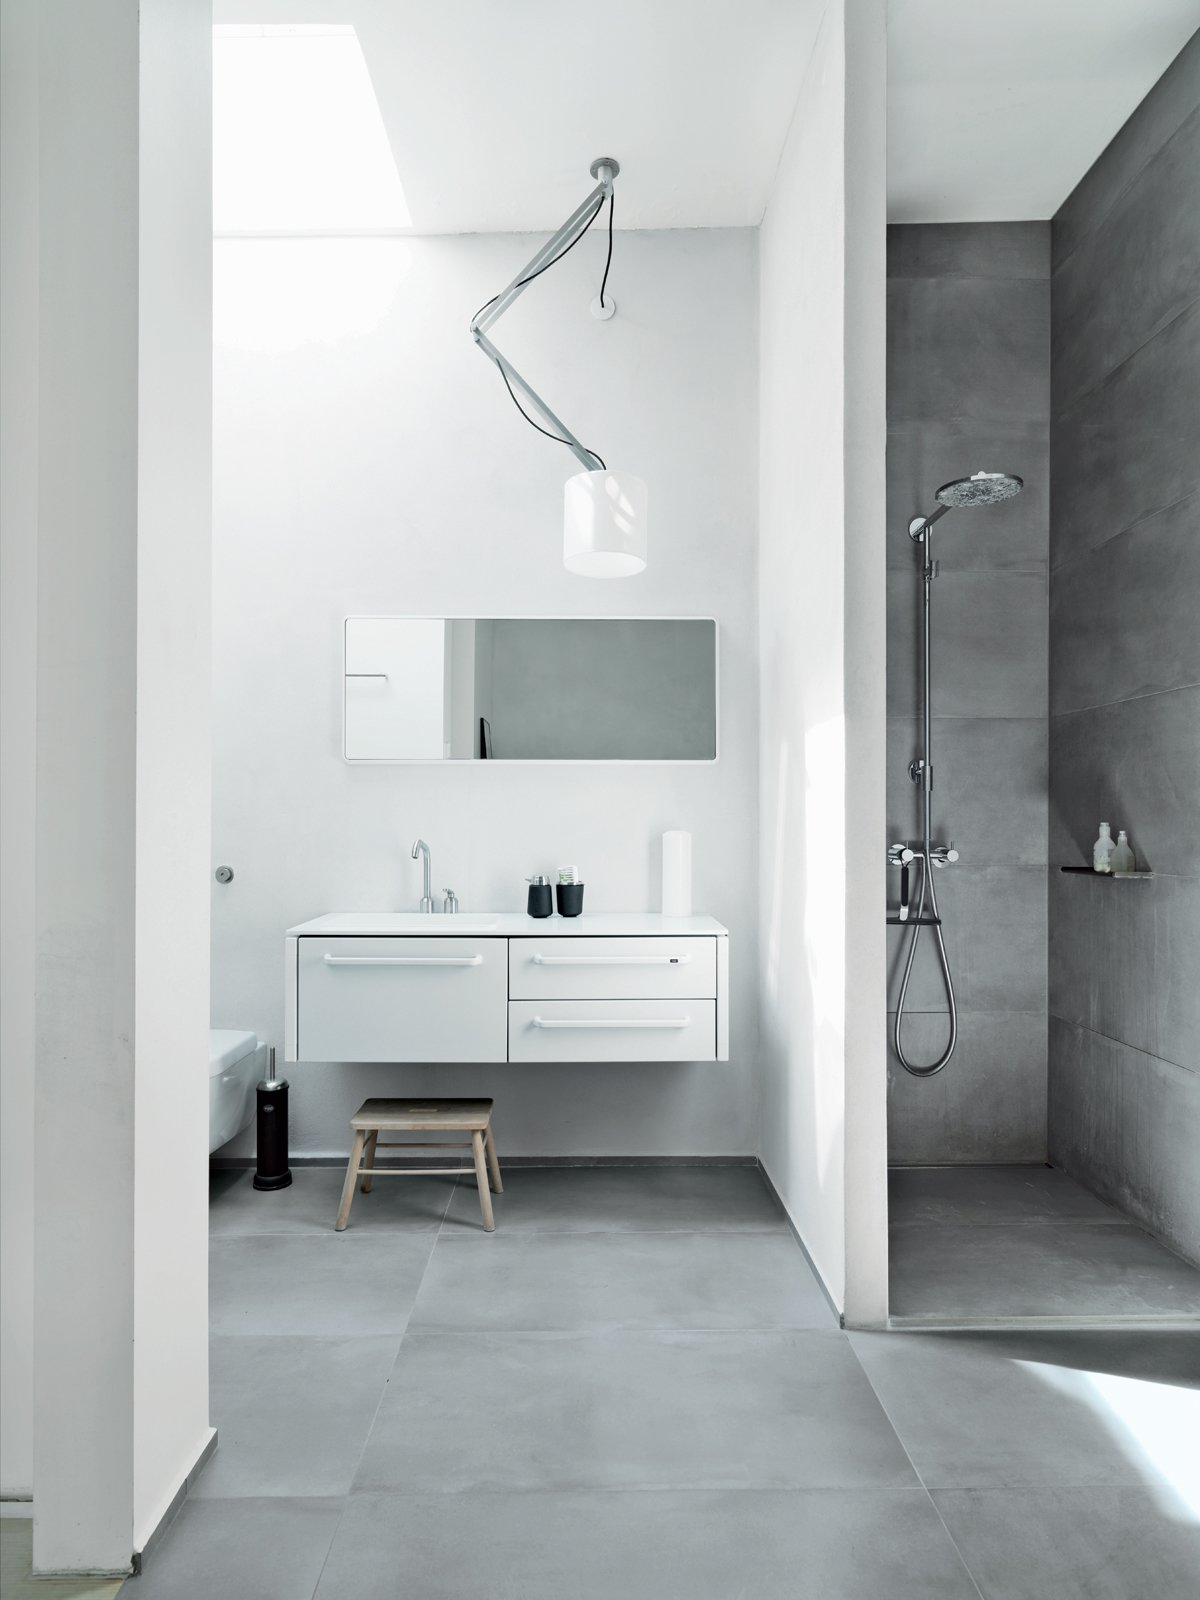 Merveilleux 10 Ideas For The Minimalist Bathroom Of Your Dreams   Photo 7 Of 10   The